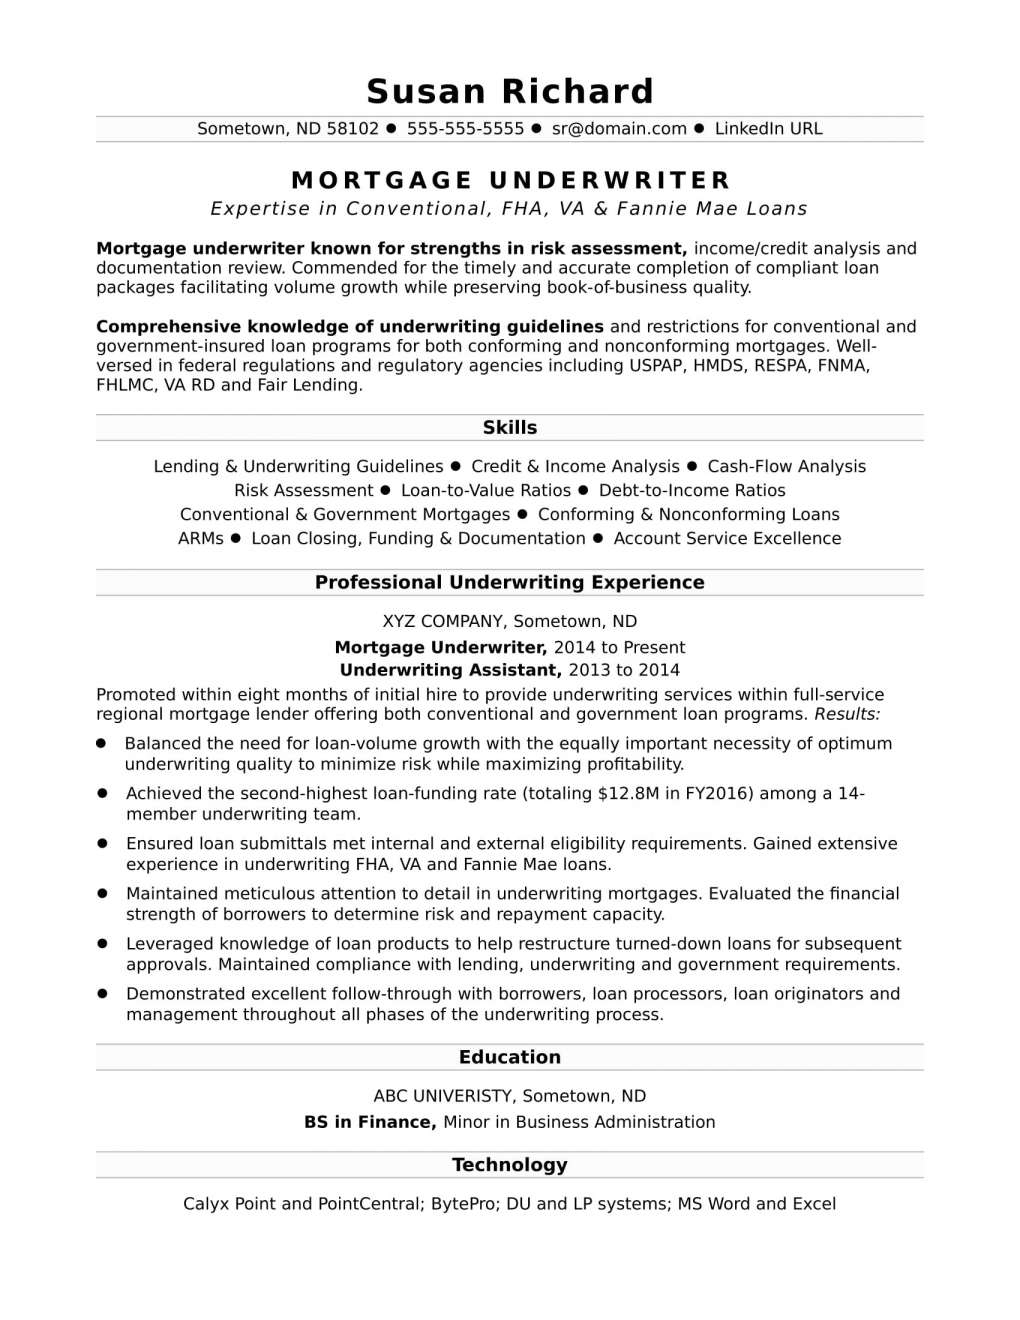 resume template finance Collection-Free Financial Report Template or Detailed Resume Template Luxury Signs Templates 2018 Rfp Template 0d 20-s